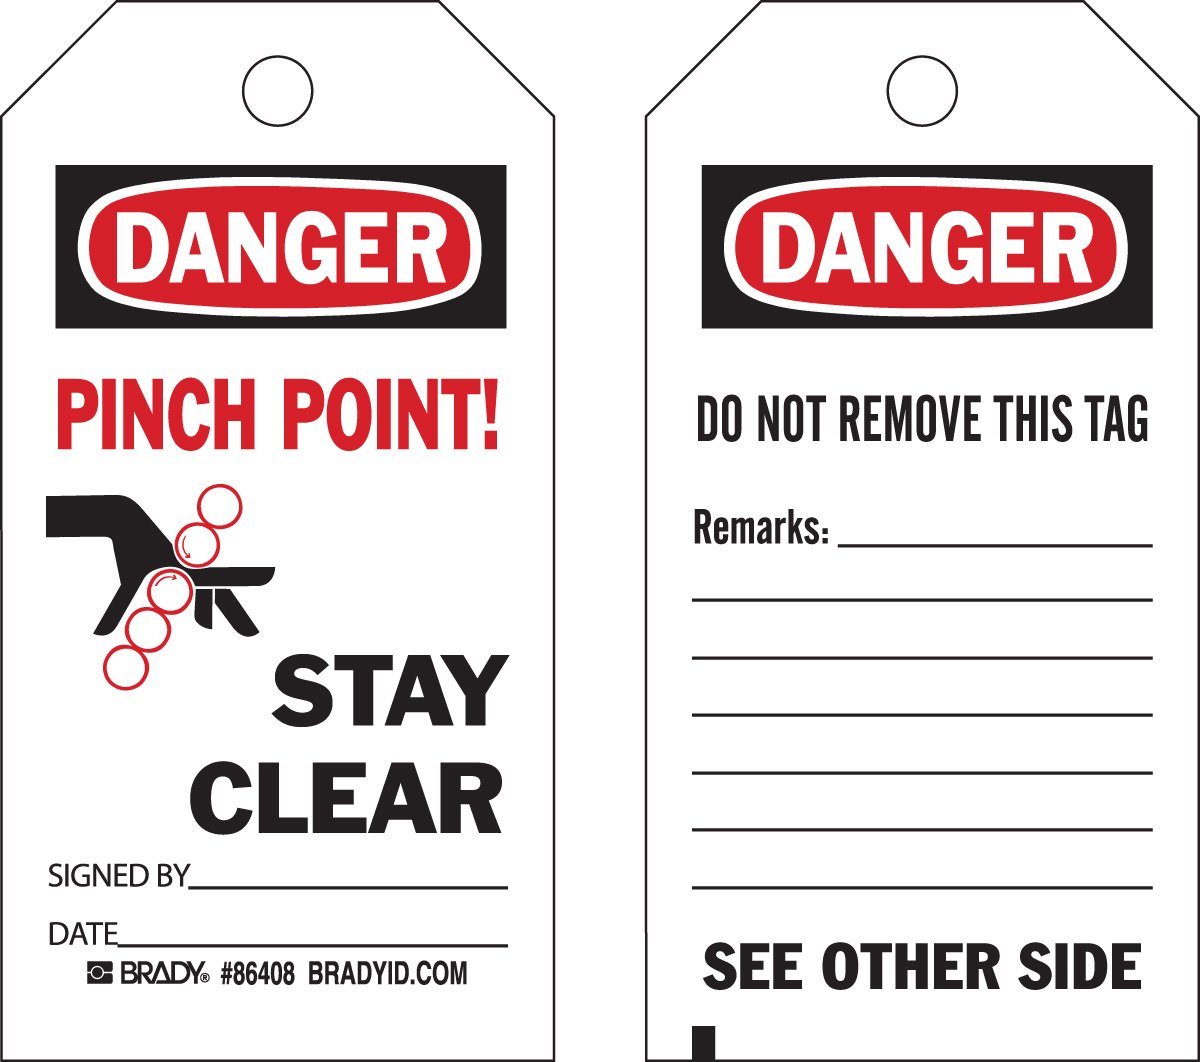 Brady  86527 5 3/4 Height x 3 Width, Economy Polyester (B-851), Black/Red on White Accident Prevention Tags (10 Tags)